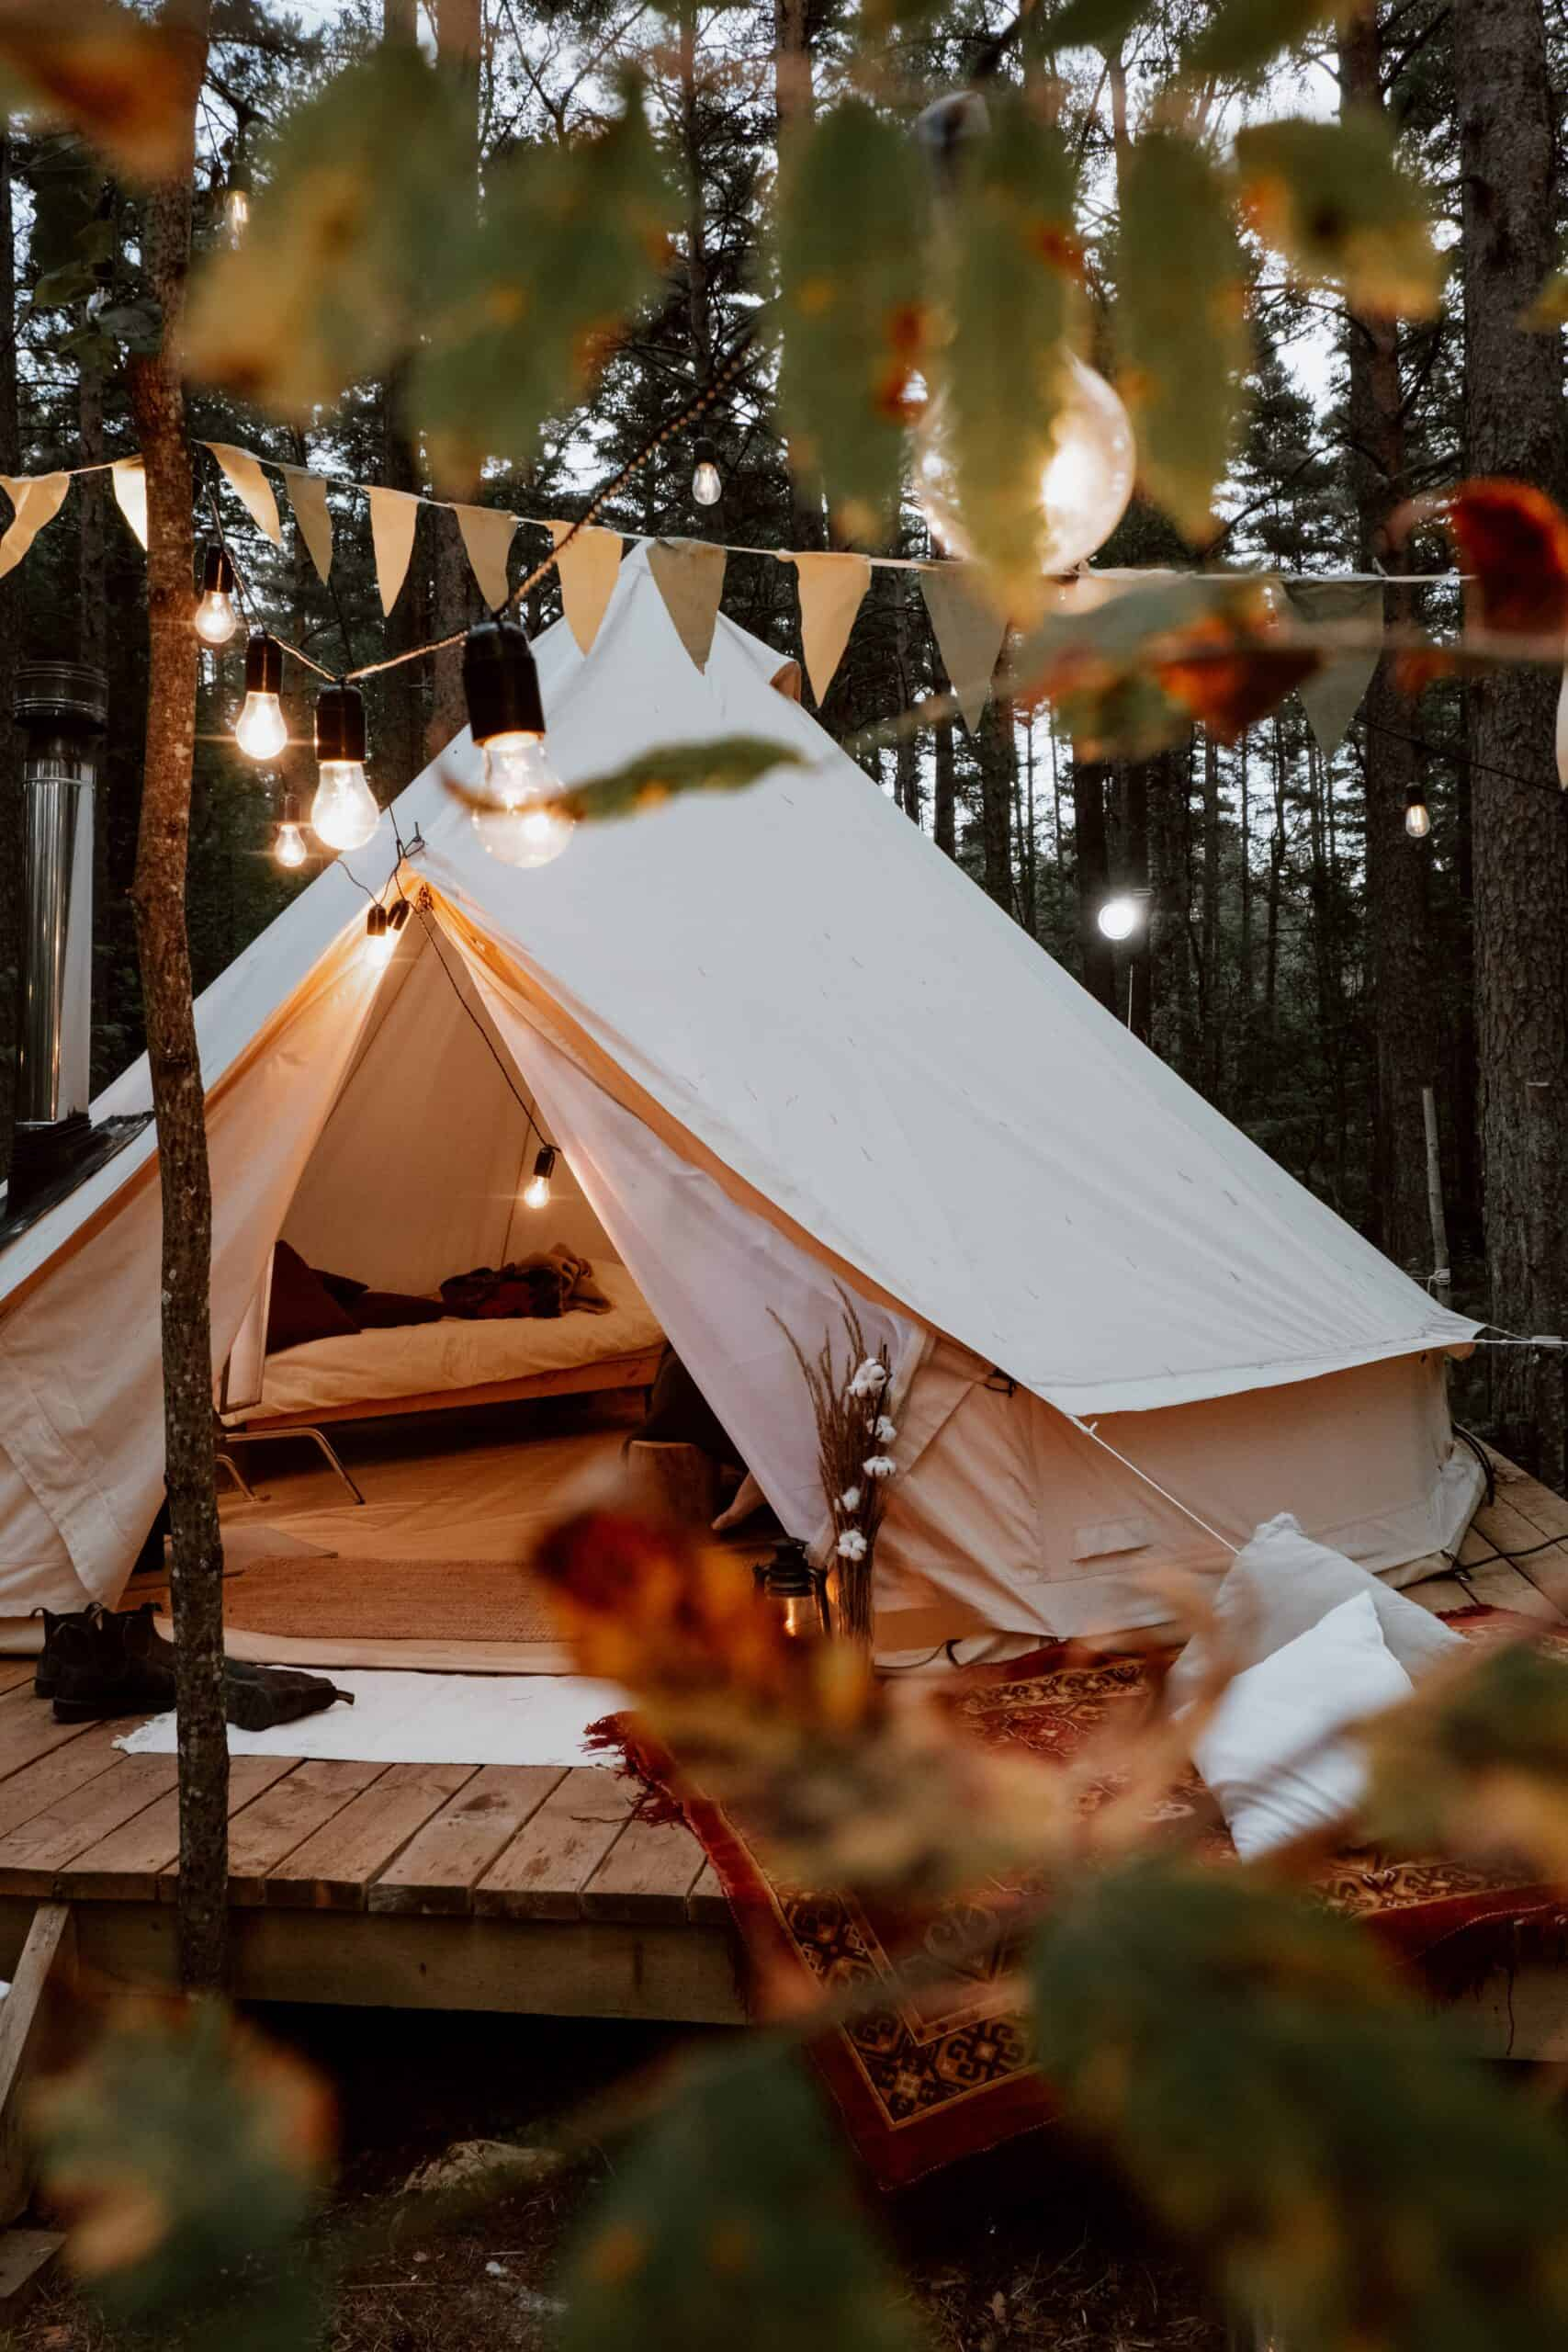 A glamping tent seated above a wooden platform